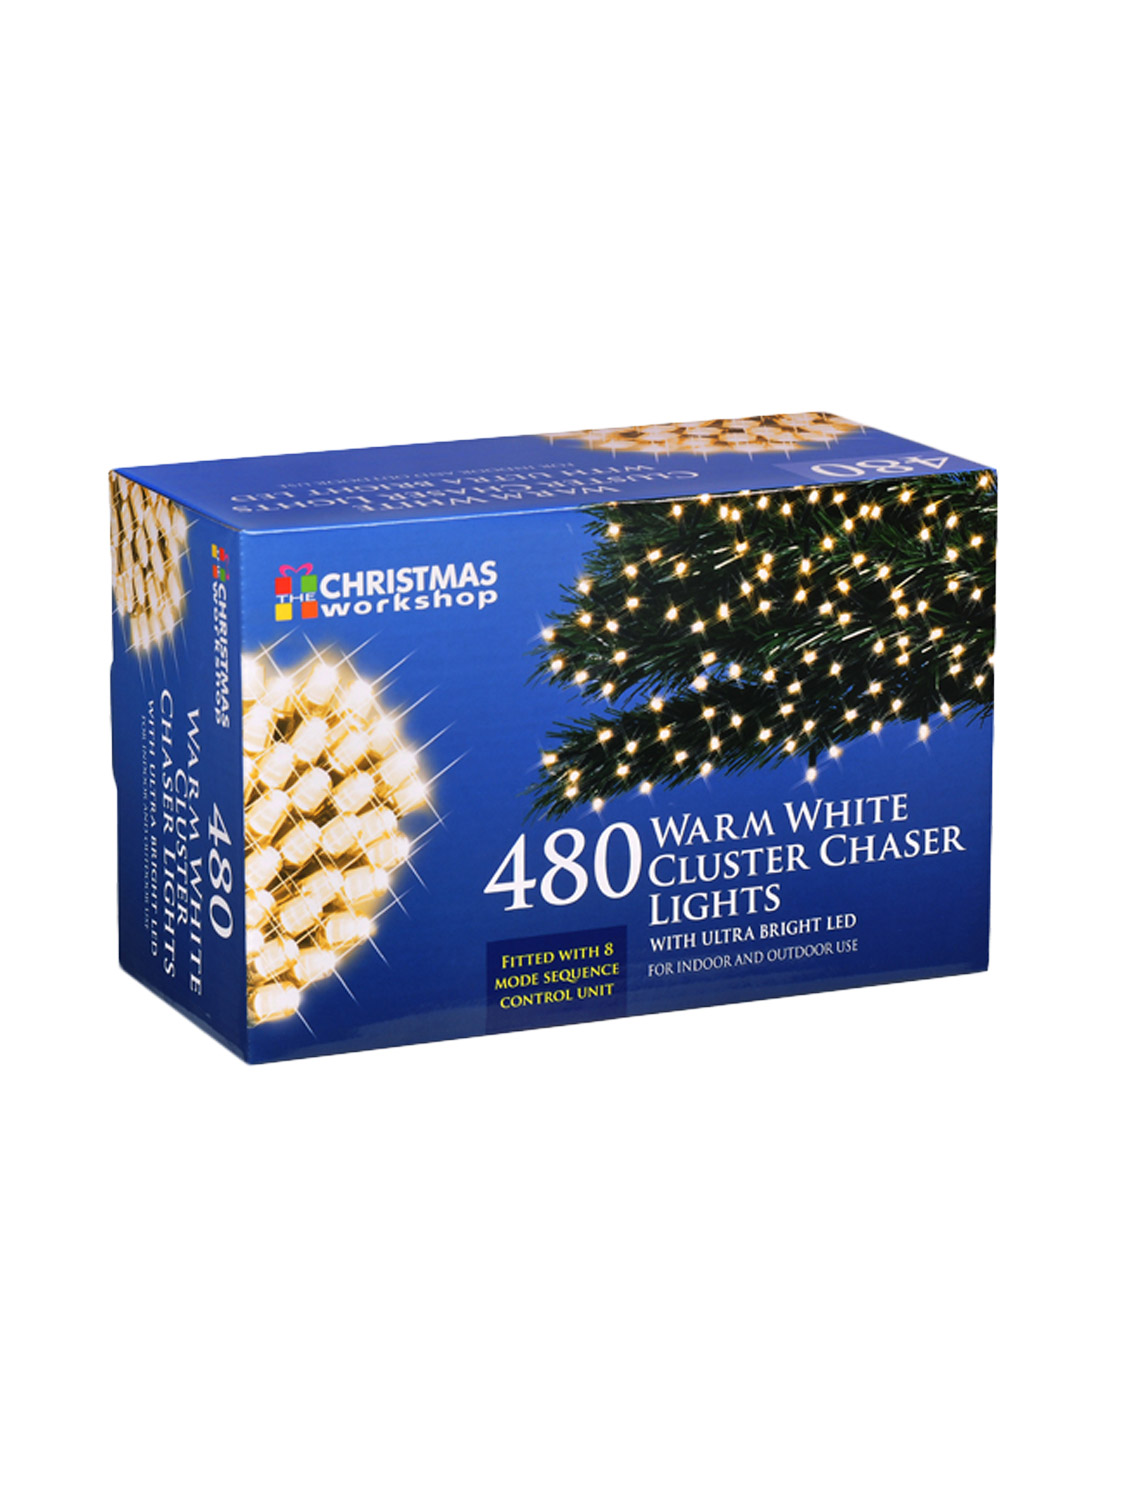 LED Chaser Cluster Christmas Light String Indoor Outdoor Multi-Colour Warm White eBay